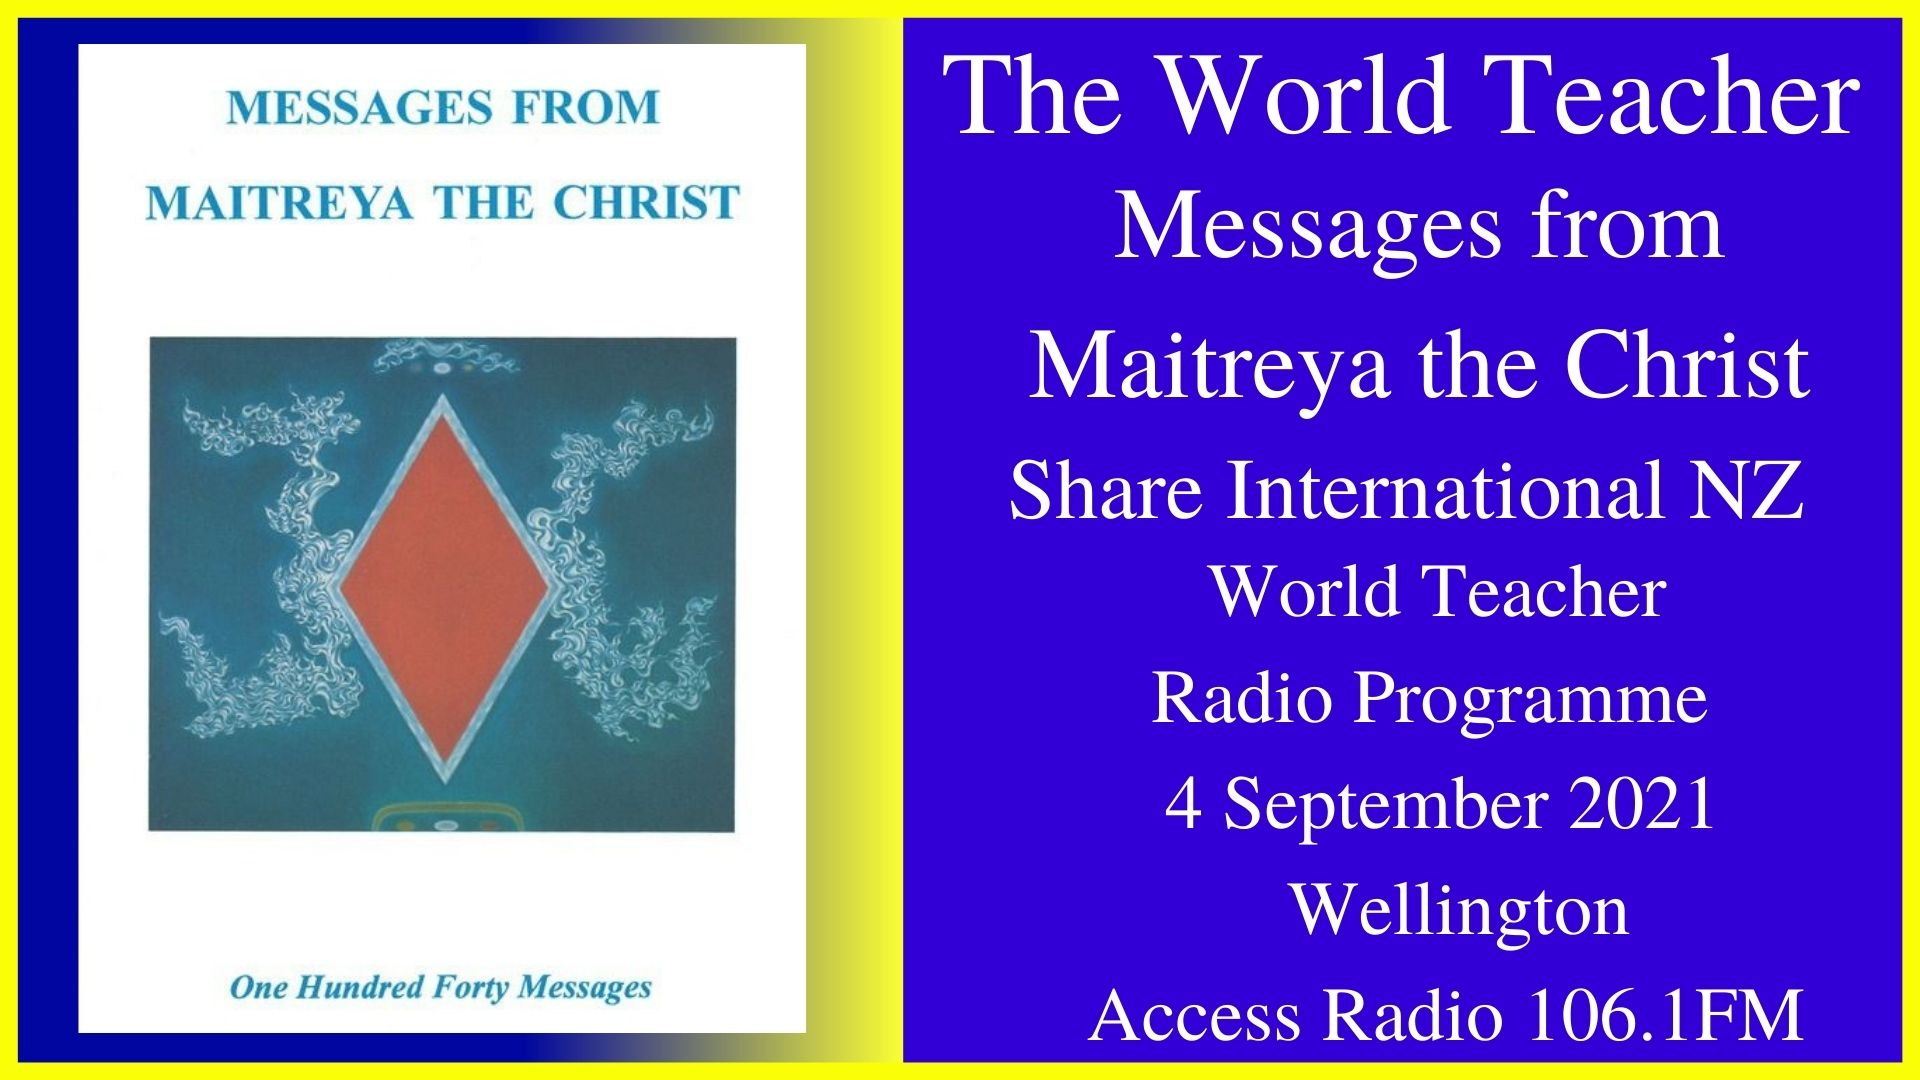 35) Messages from Maitreya the Christ